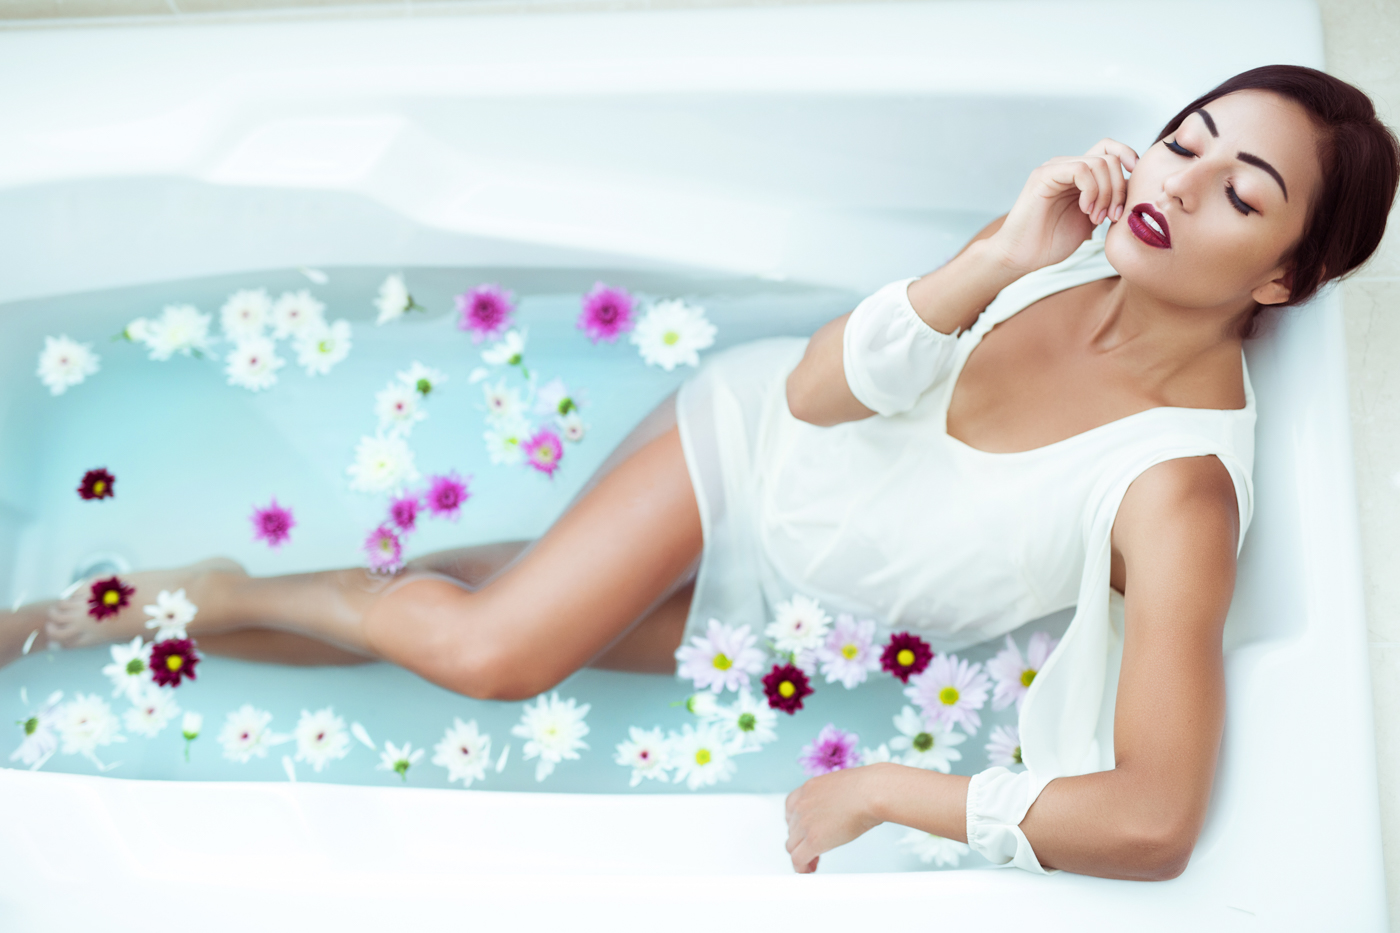 bathtub-photoshoot-at-my-studio-ksenia-pro-photography-2